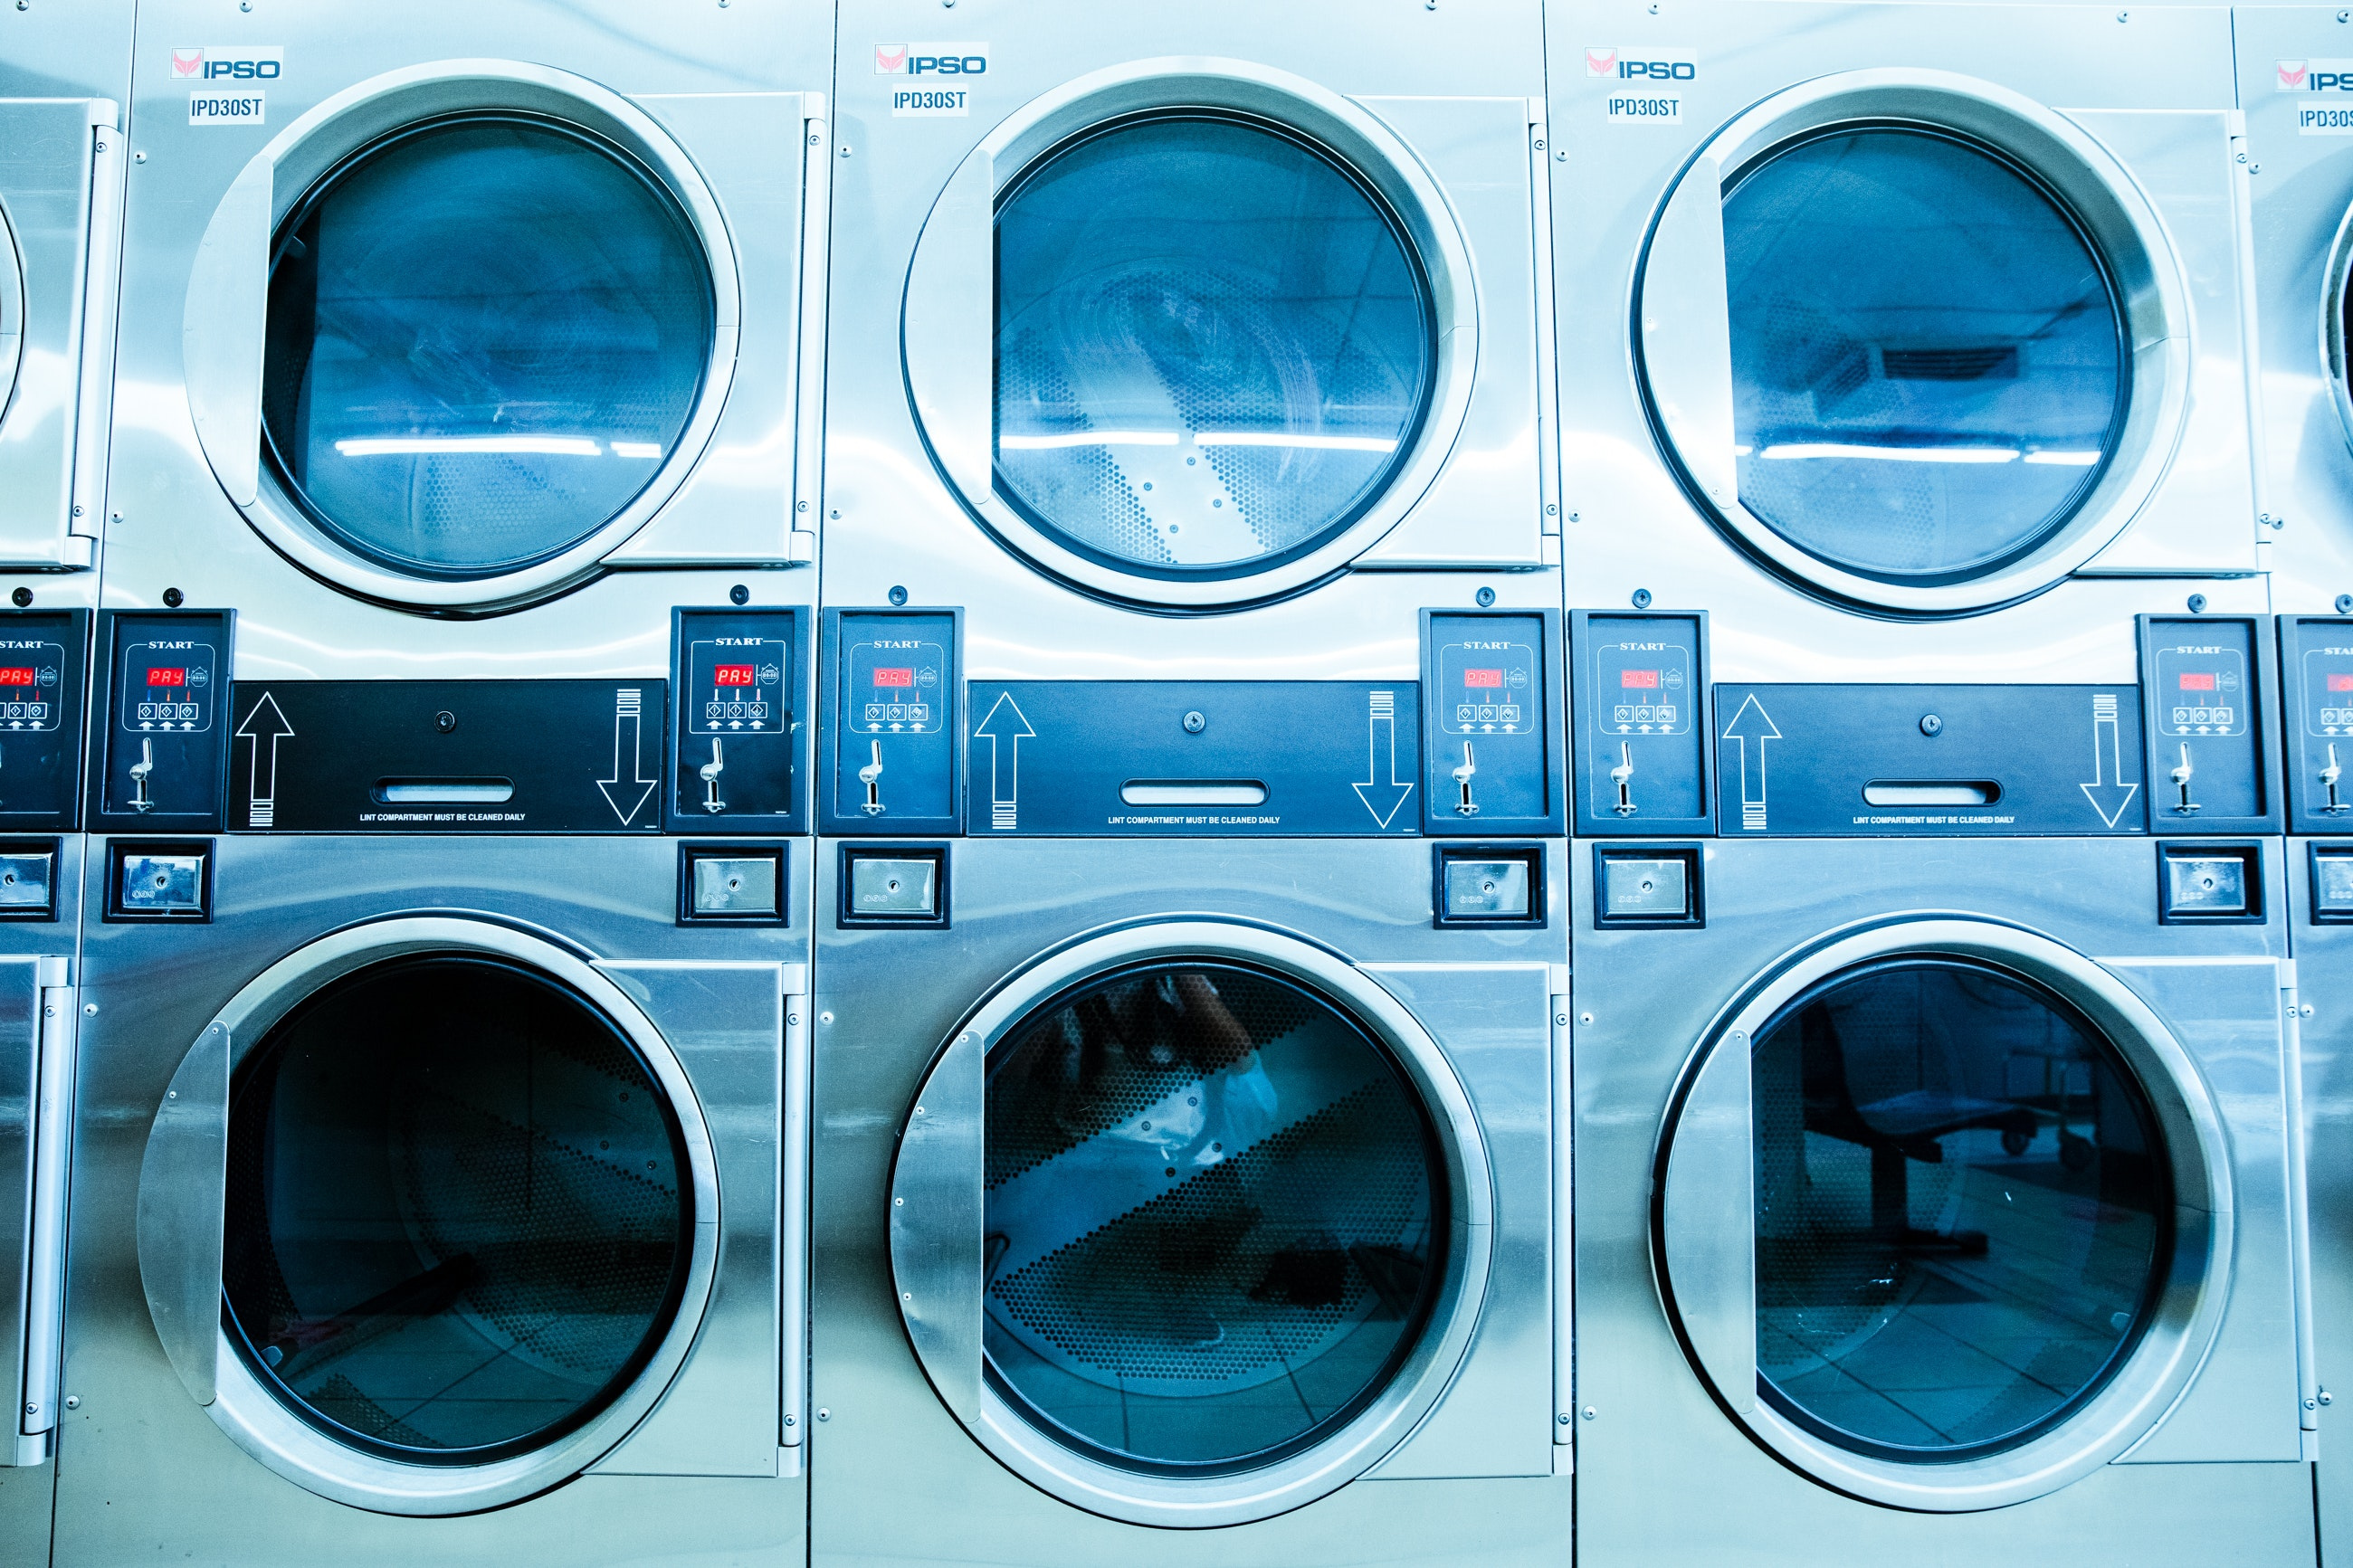 Growing Full-Service Laundromat along with Self-Service Machines